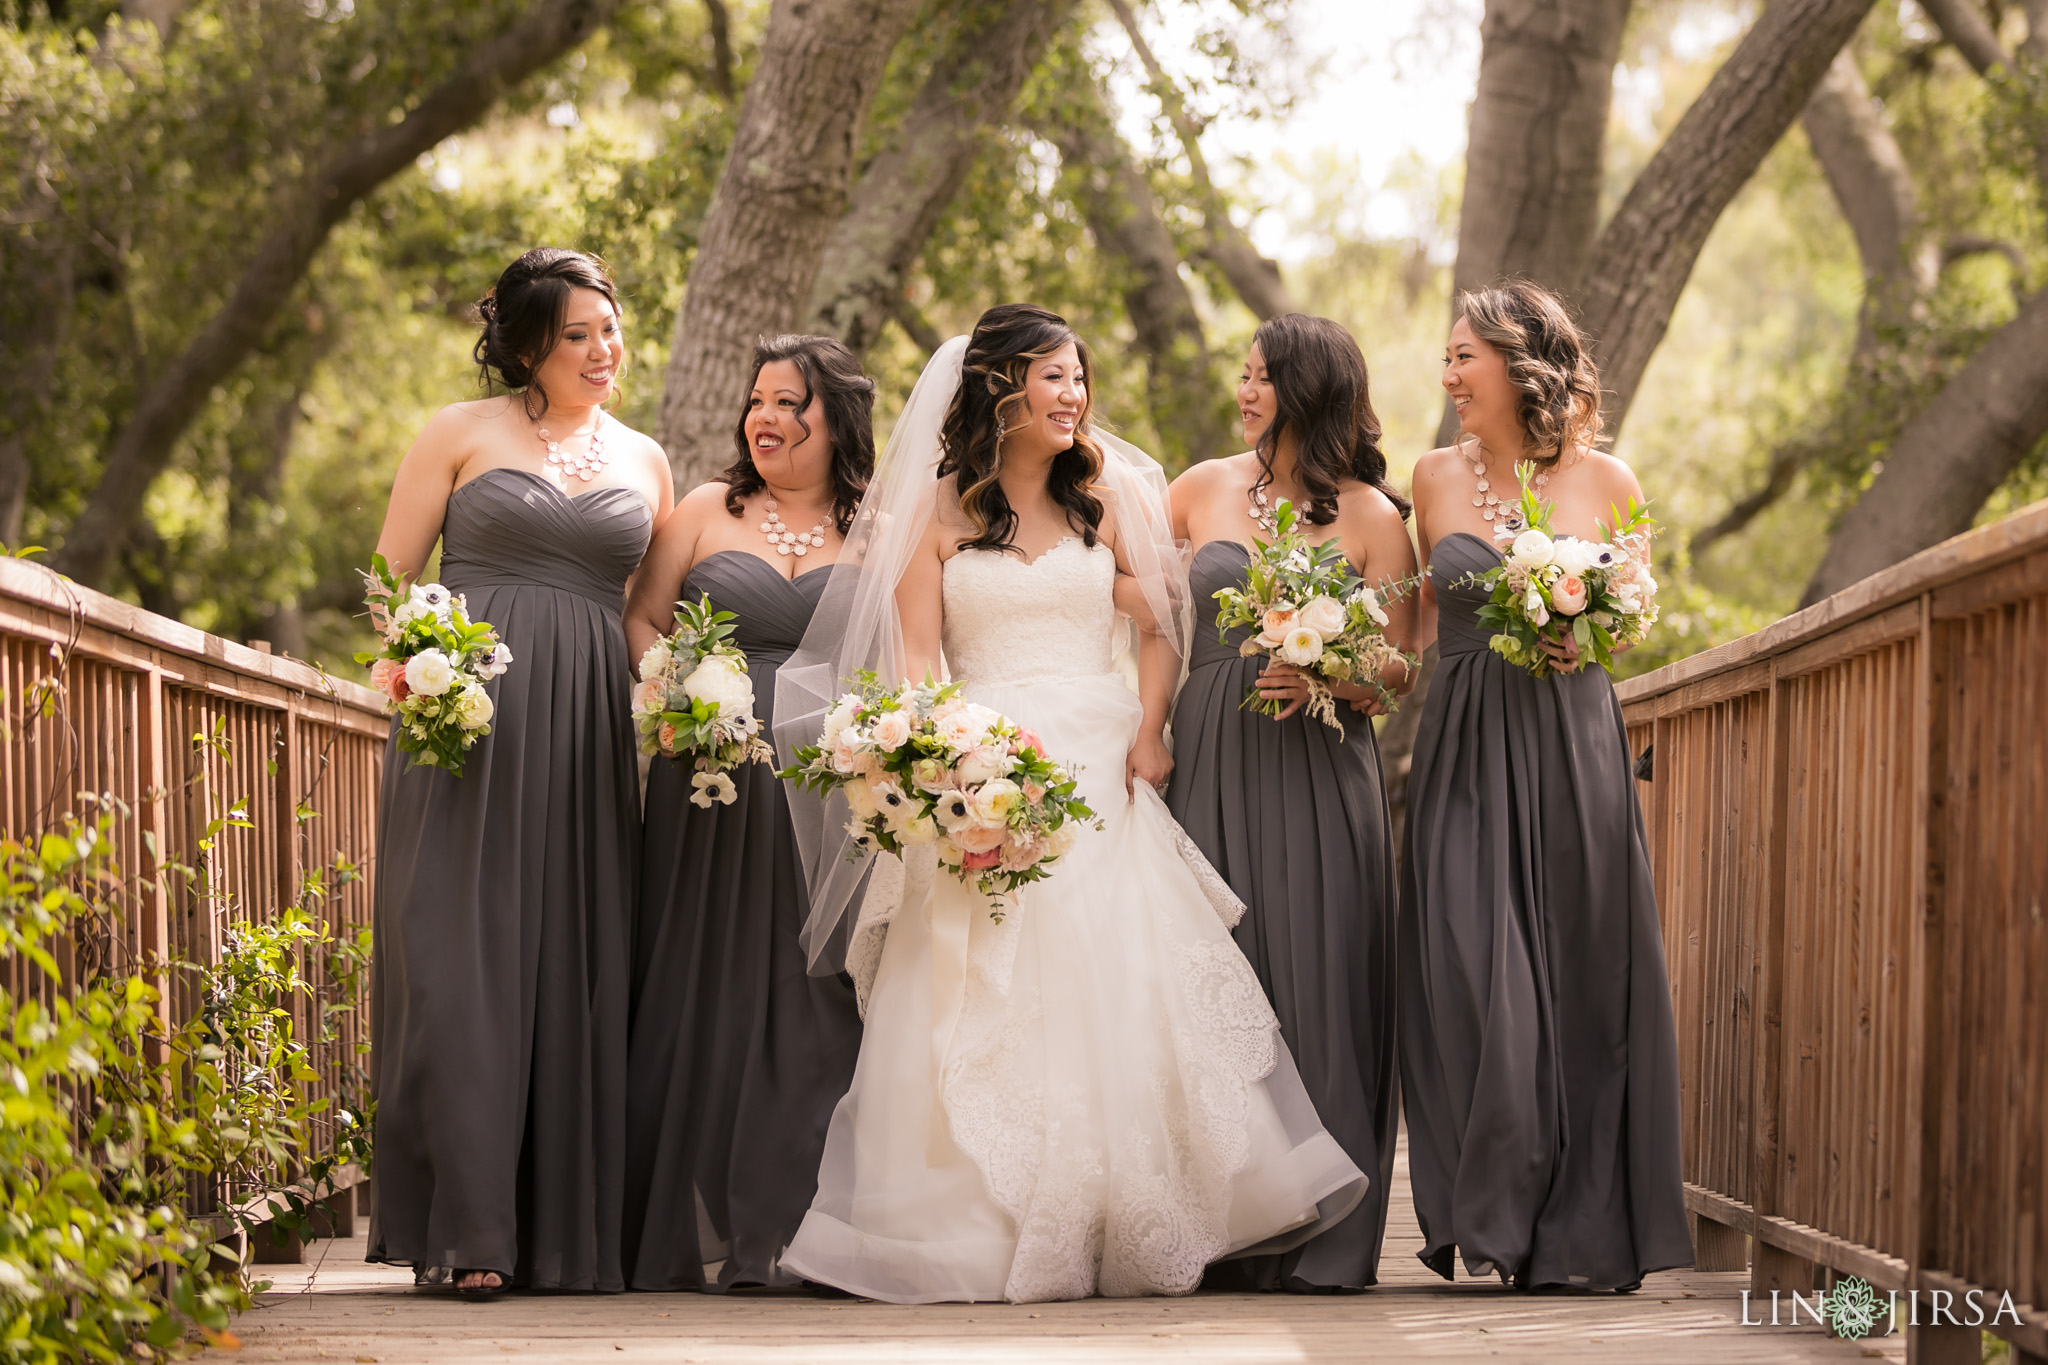 07 calamigos ranch malibu bride wedding photography